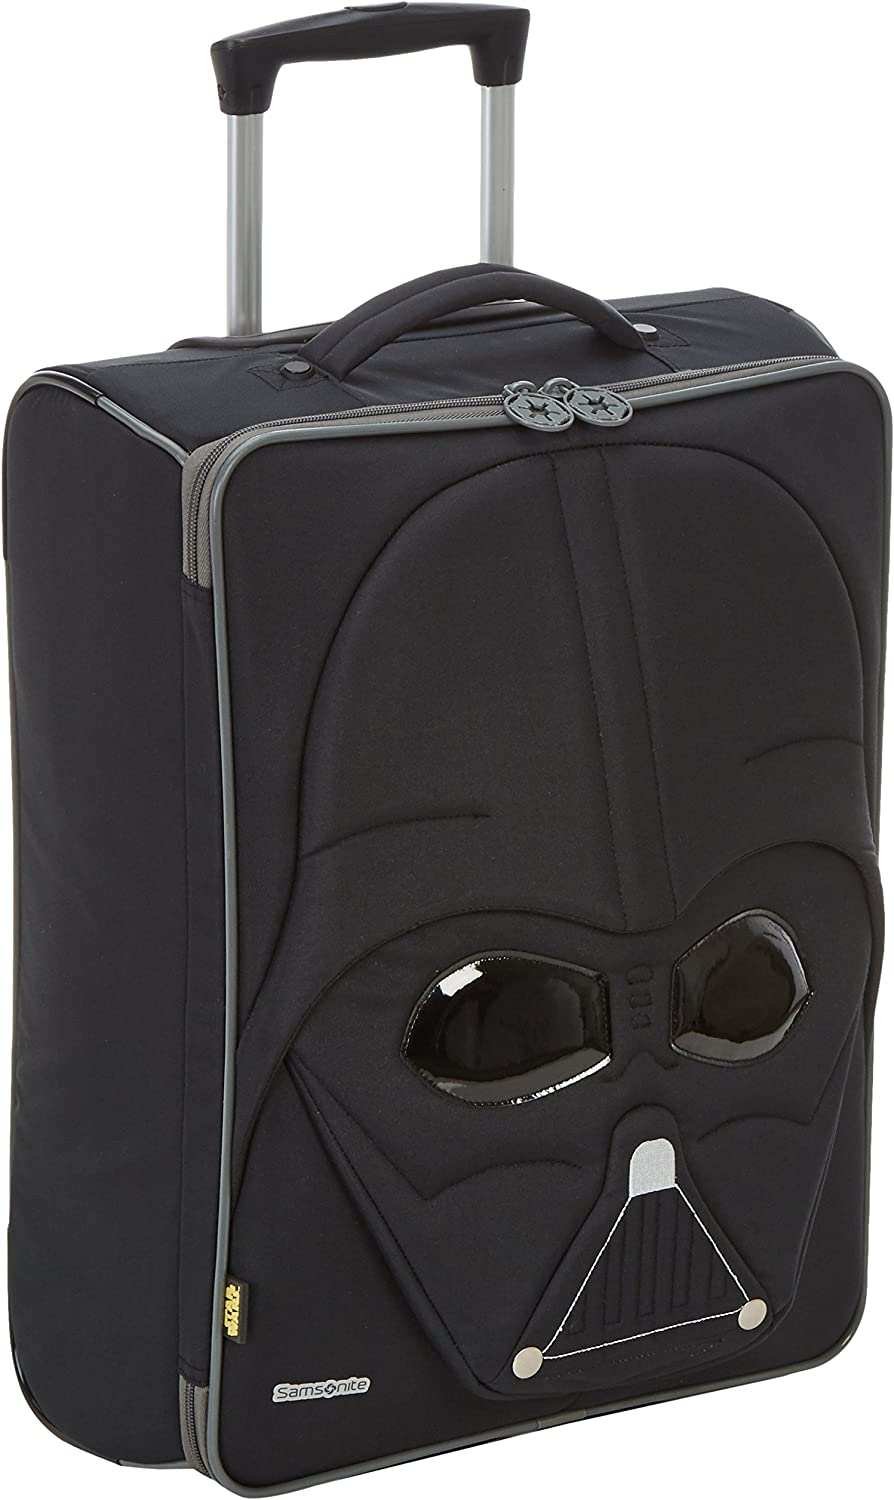 Samsonite Star Wars Ultimate - Upright S Equipaje de Mano, 52 cm, 32.5 L, Negro (Star Wars Iconic)